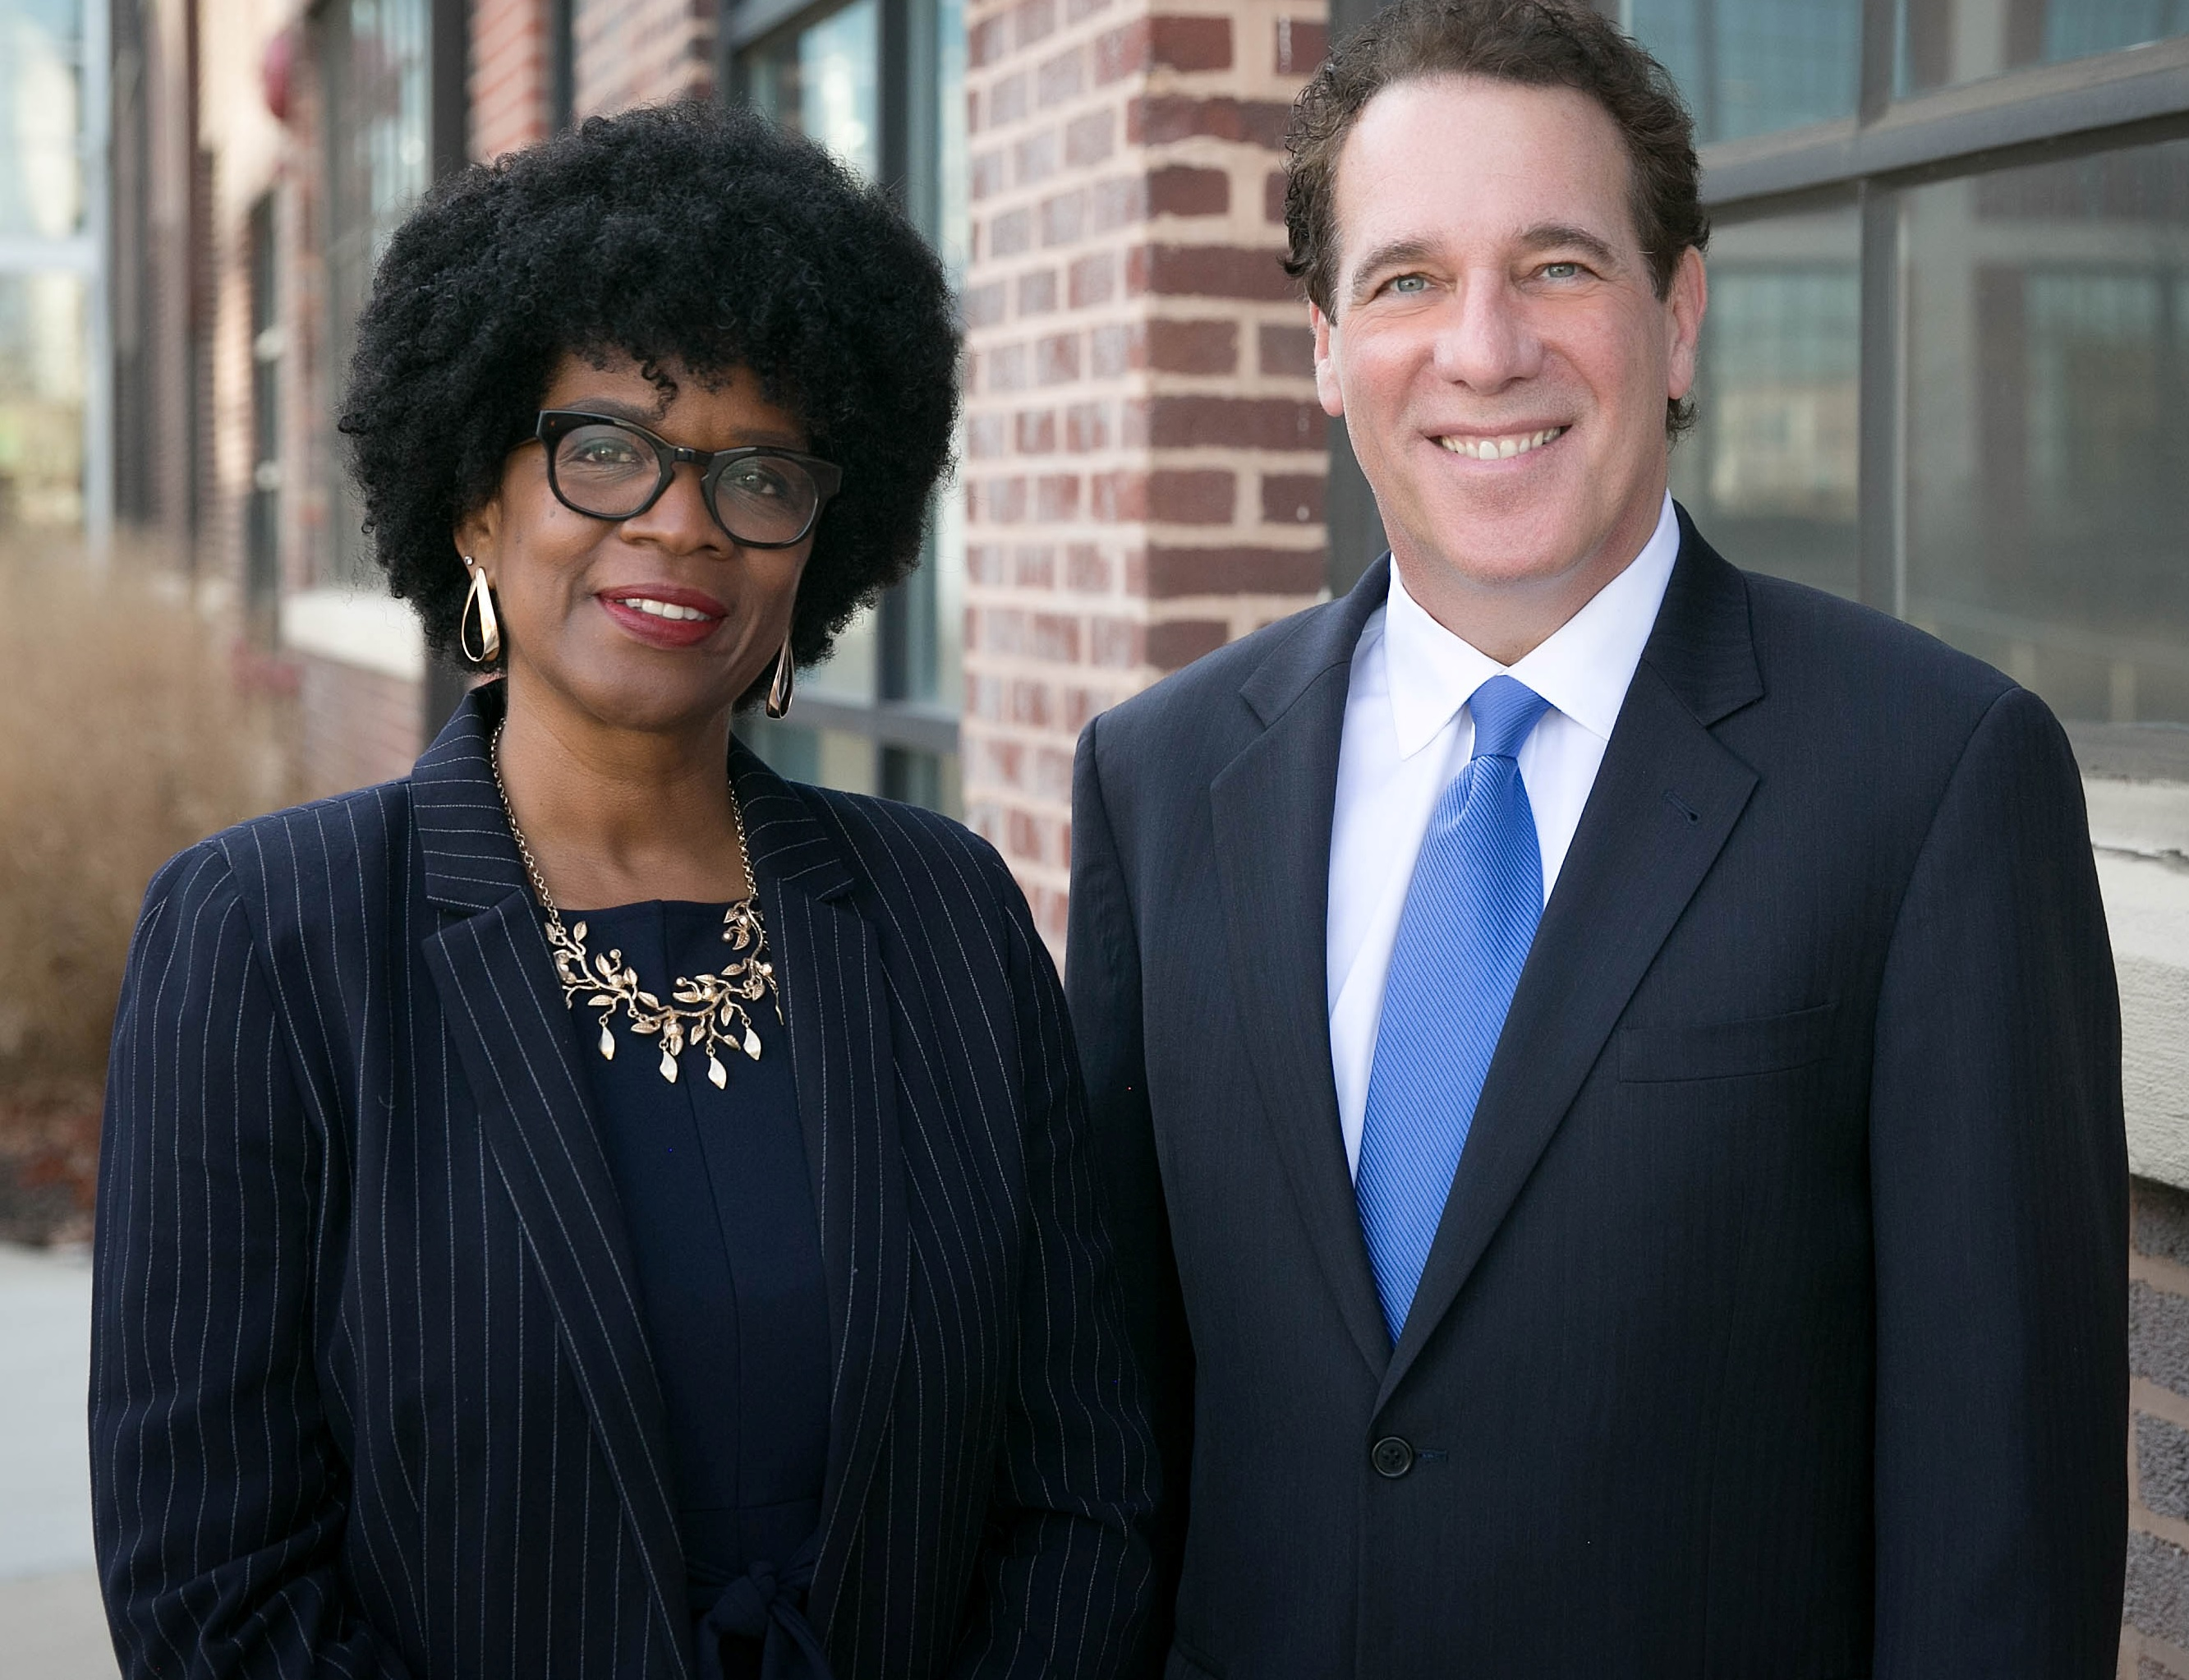 Ballot afterlife: To support Ervin, vote for Kamenetz